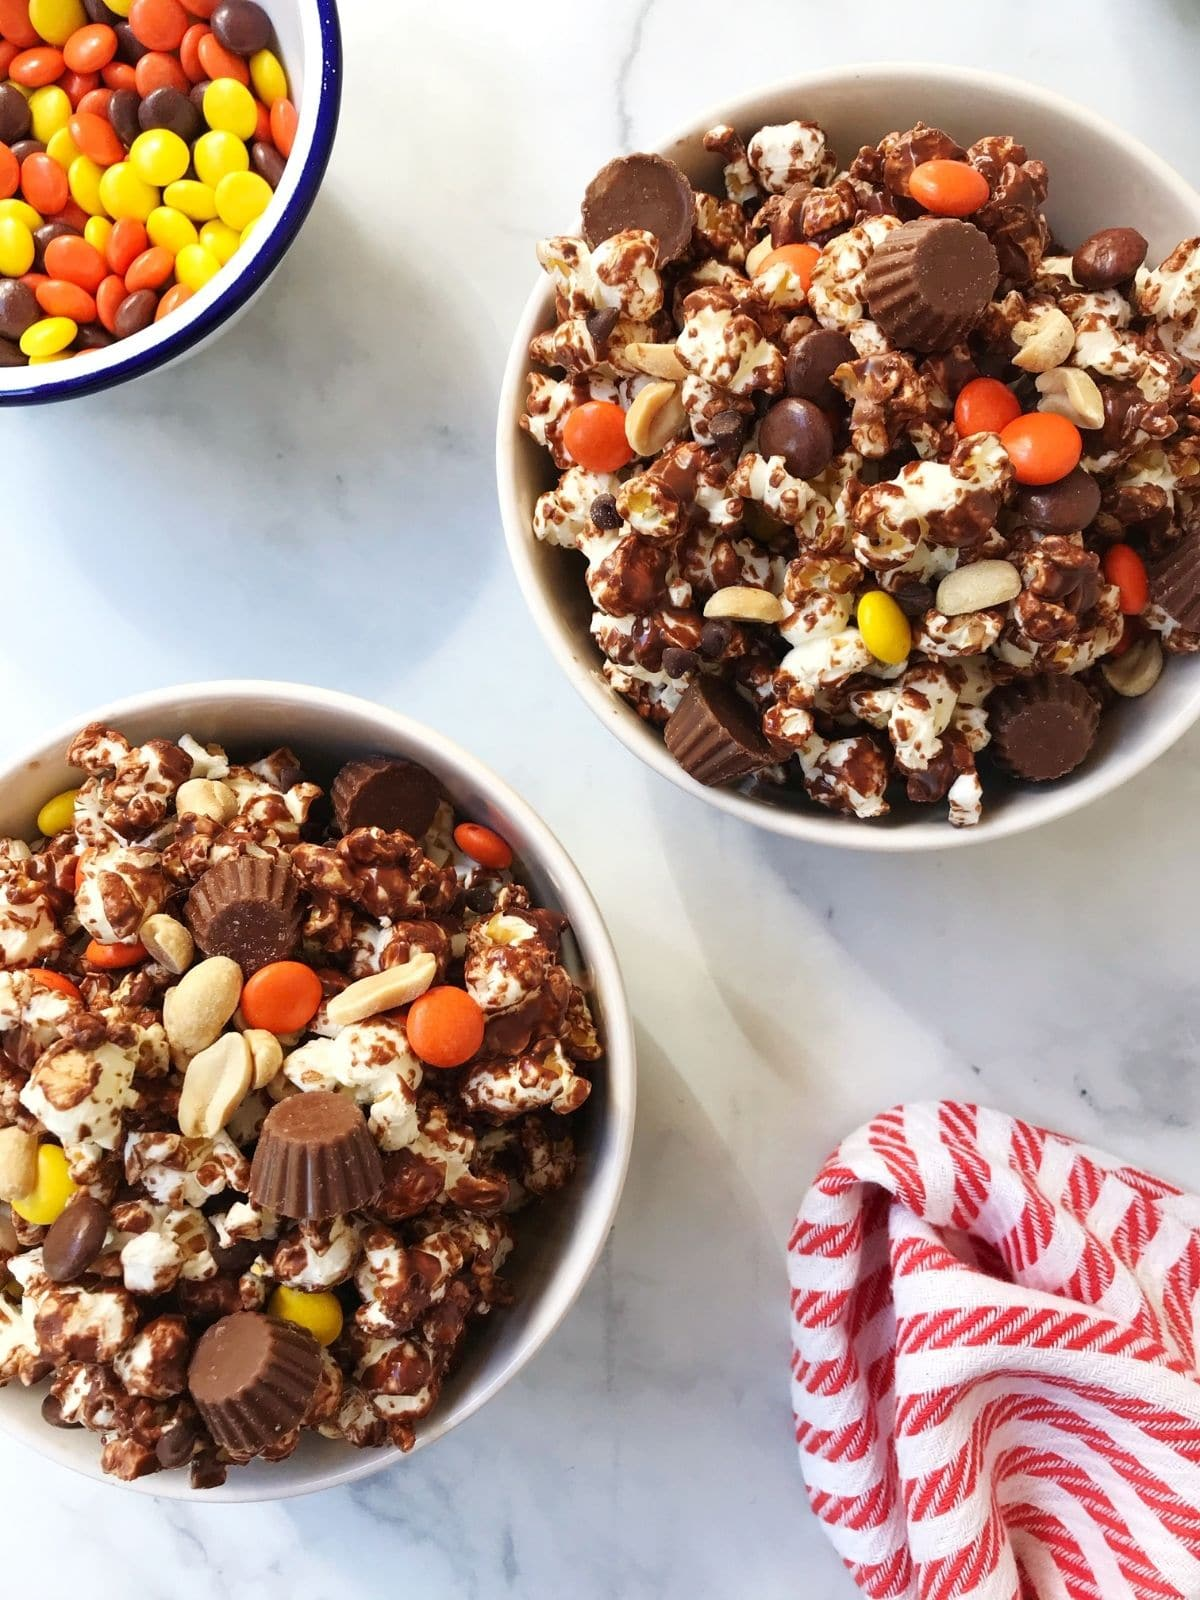 two bowls of popcorn with extra reese's pieces